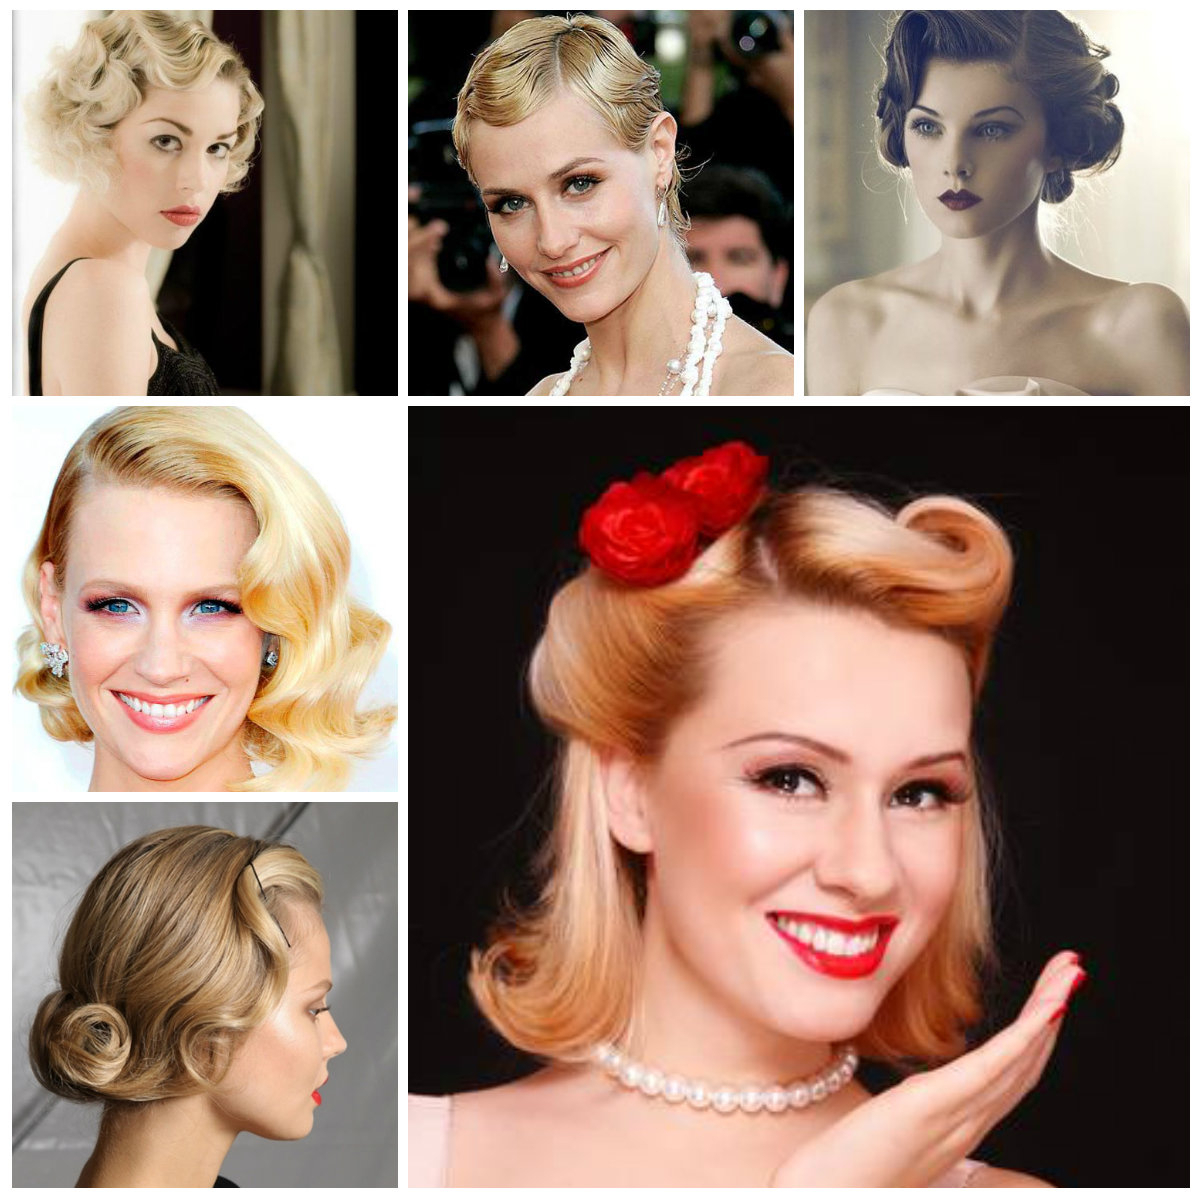 Retro Hairstyles | Hairstyles For Women 2019, Haircuts For Long Throughout Vintage Hairstyle For Short Hair (View 6 of 25)